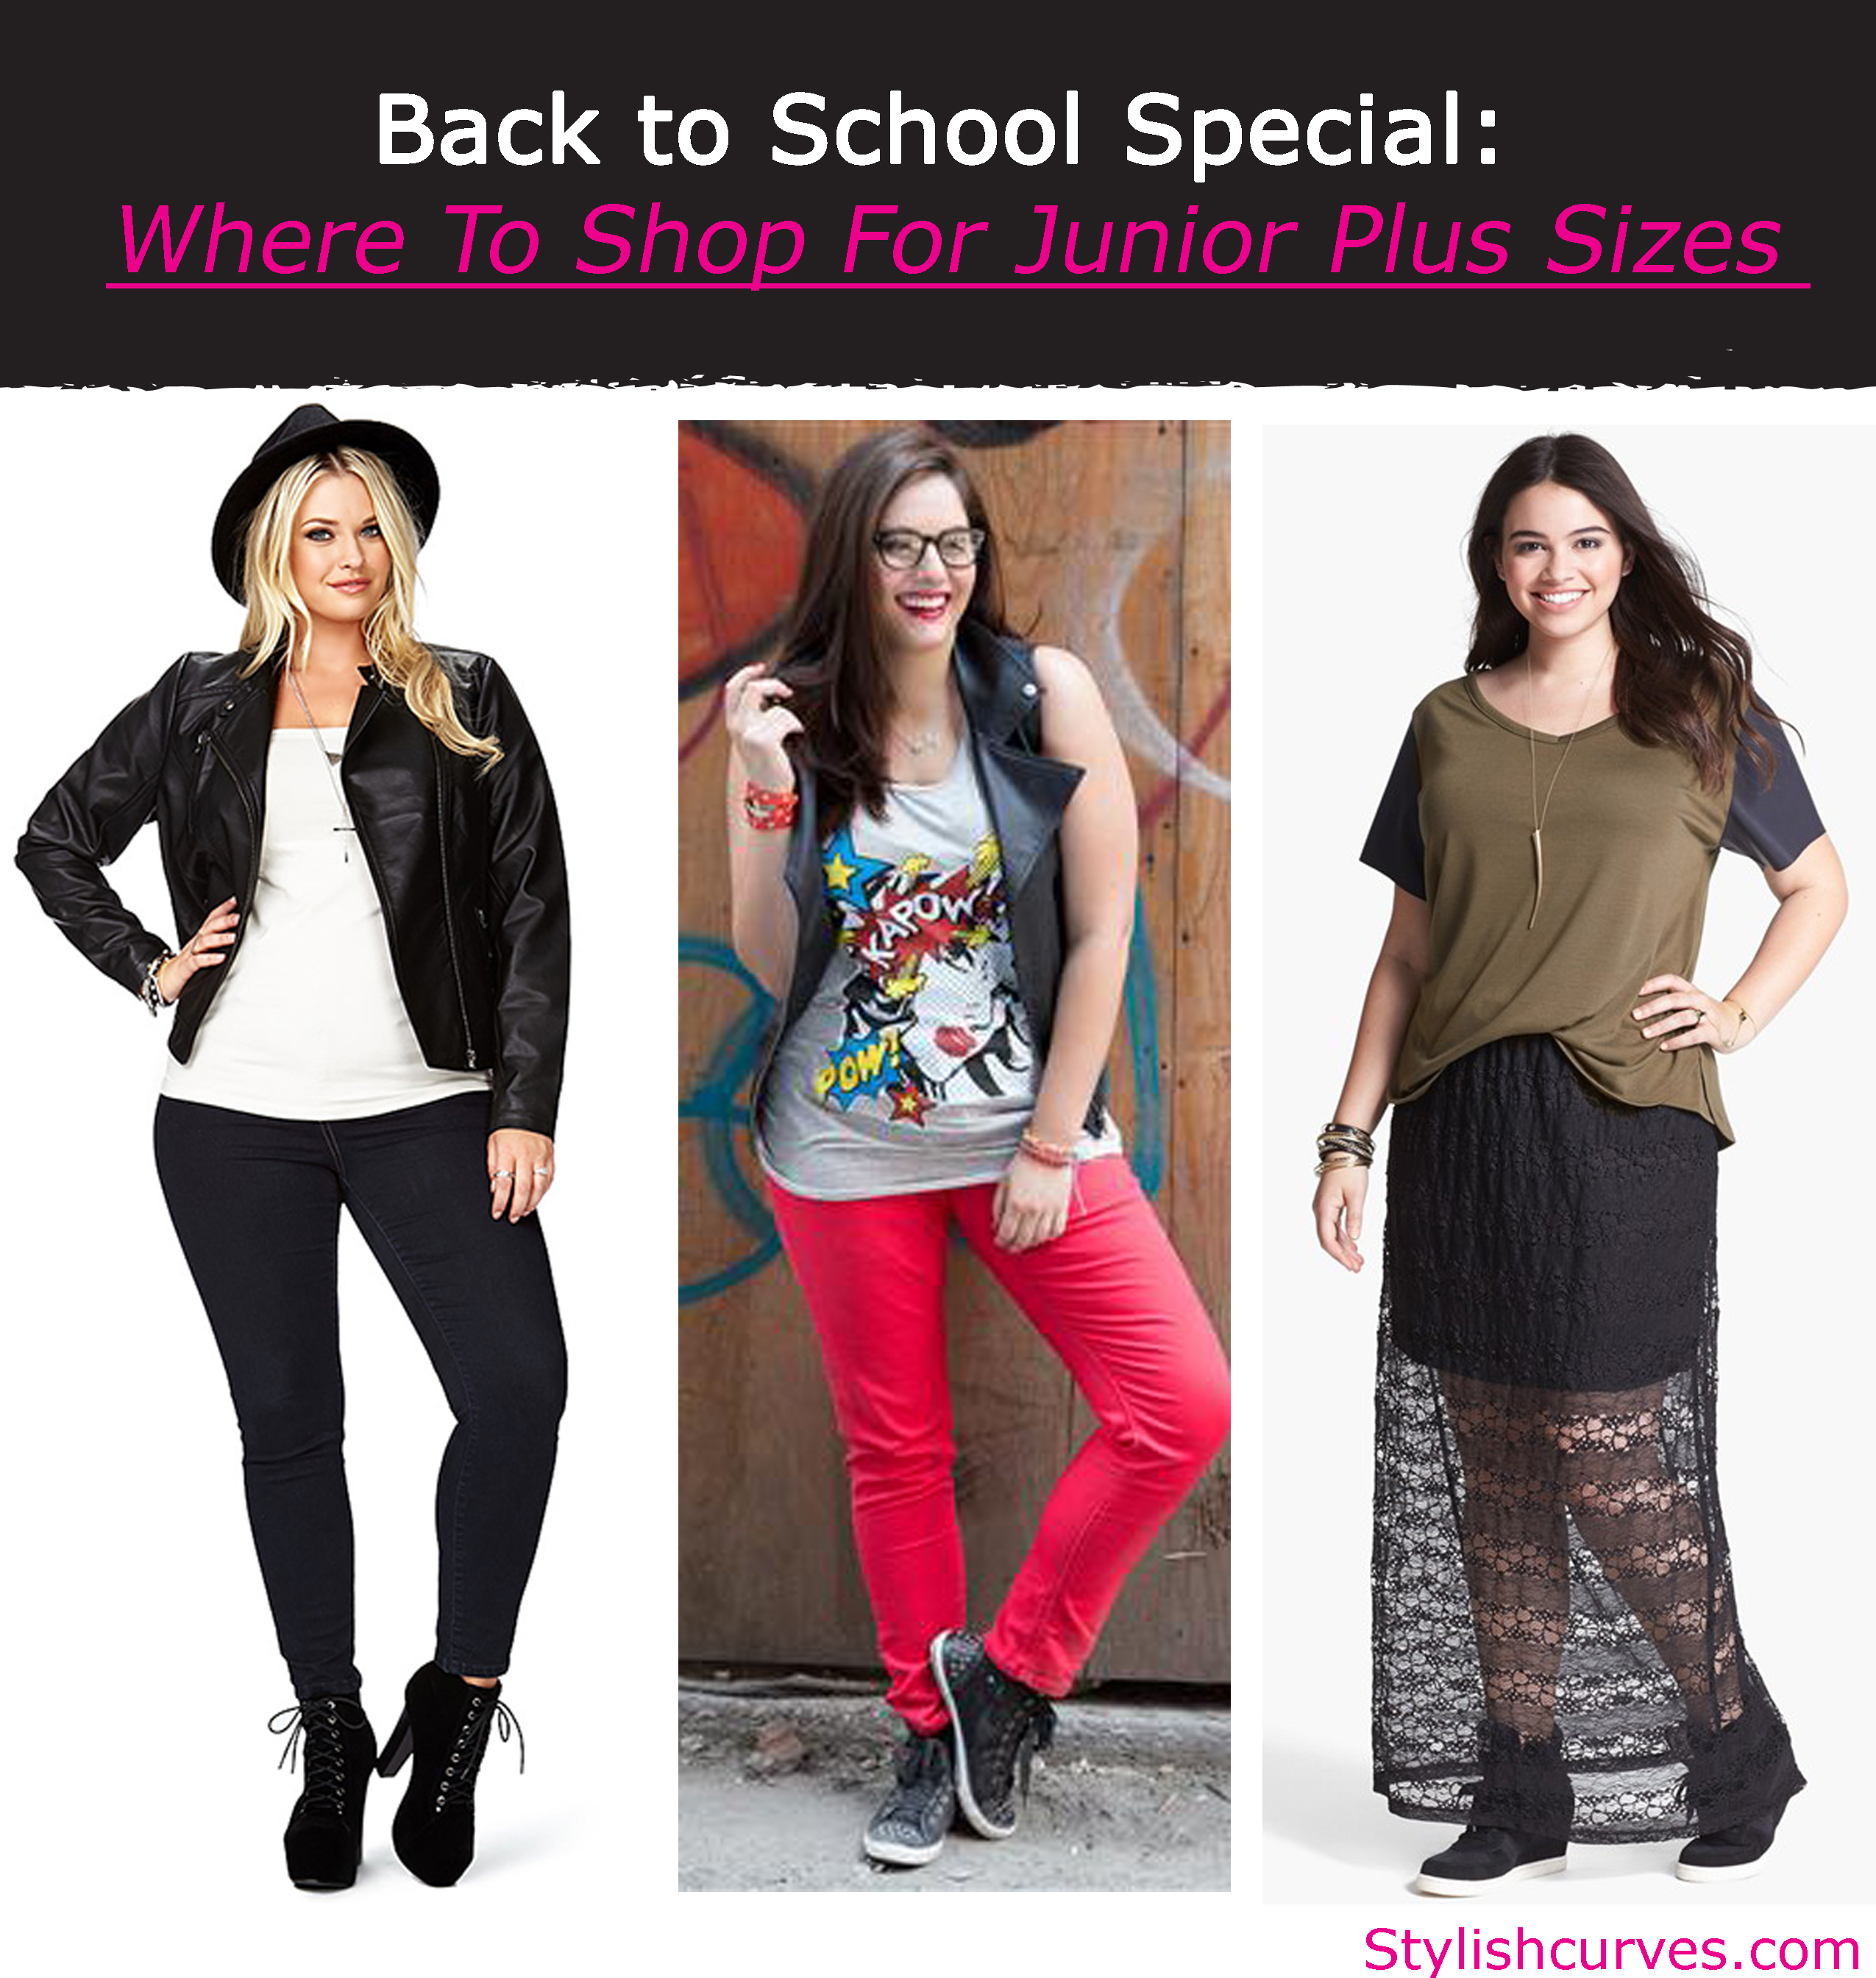 back to school special: where to shop for junior plus size clothes